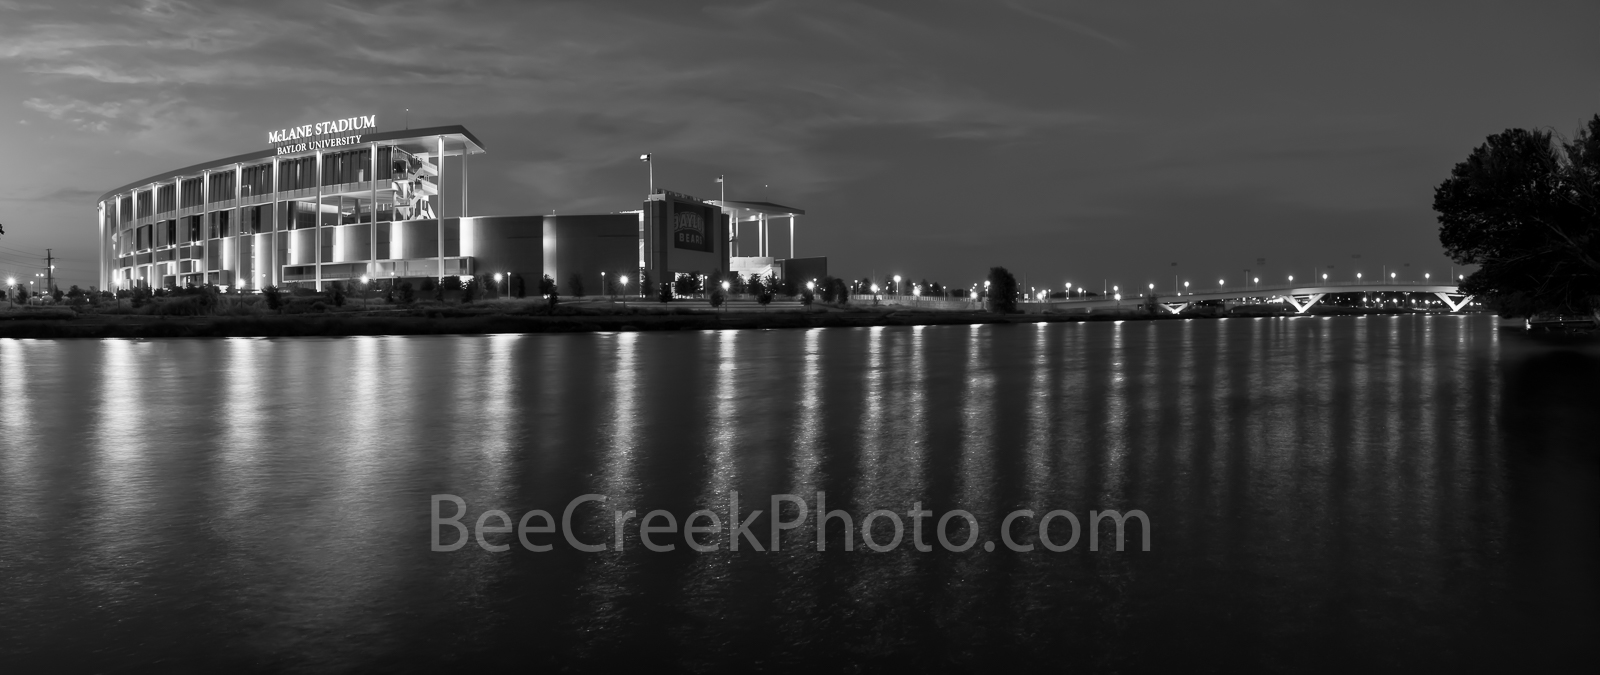 Waco, sunset, BW, black and white, McLane Stadium, Baylor University, dusk, blue hour, Baylor Bears, stadium , University of Baylor, school, Brazos river, pano, panorama, black and white, 